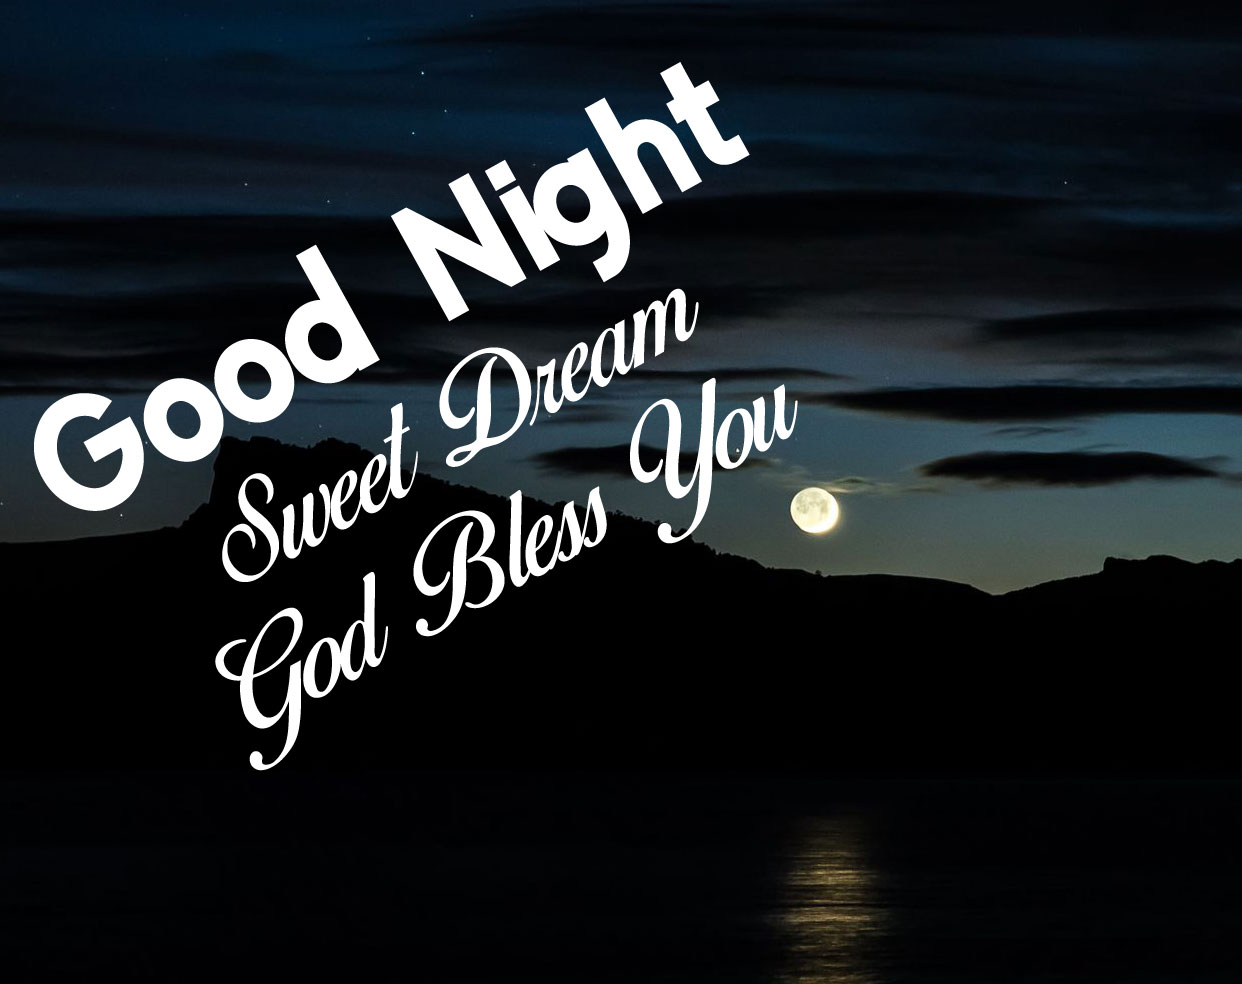 moon sky Good Nihgt Sweet Dream God Bless You images hd